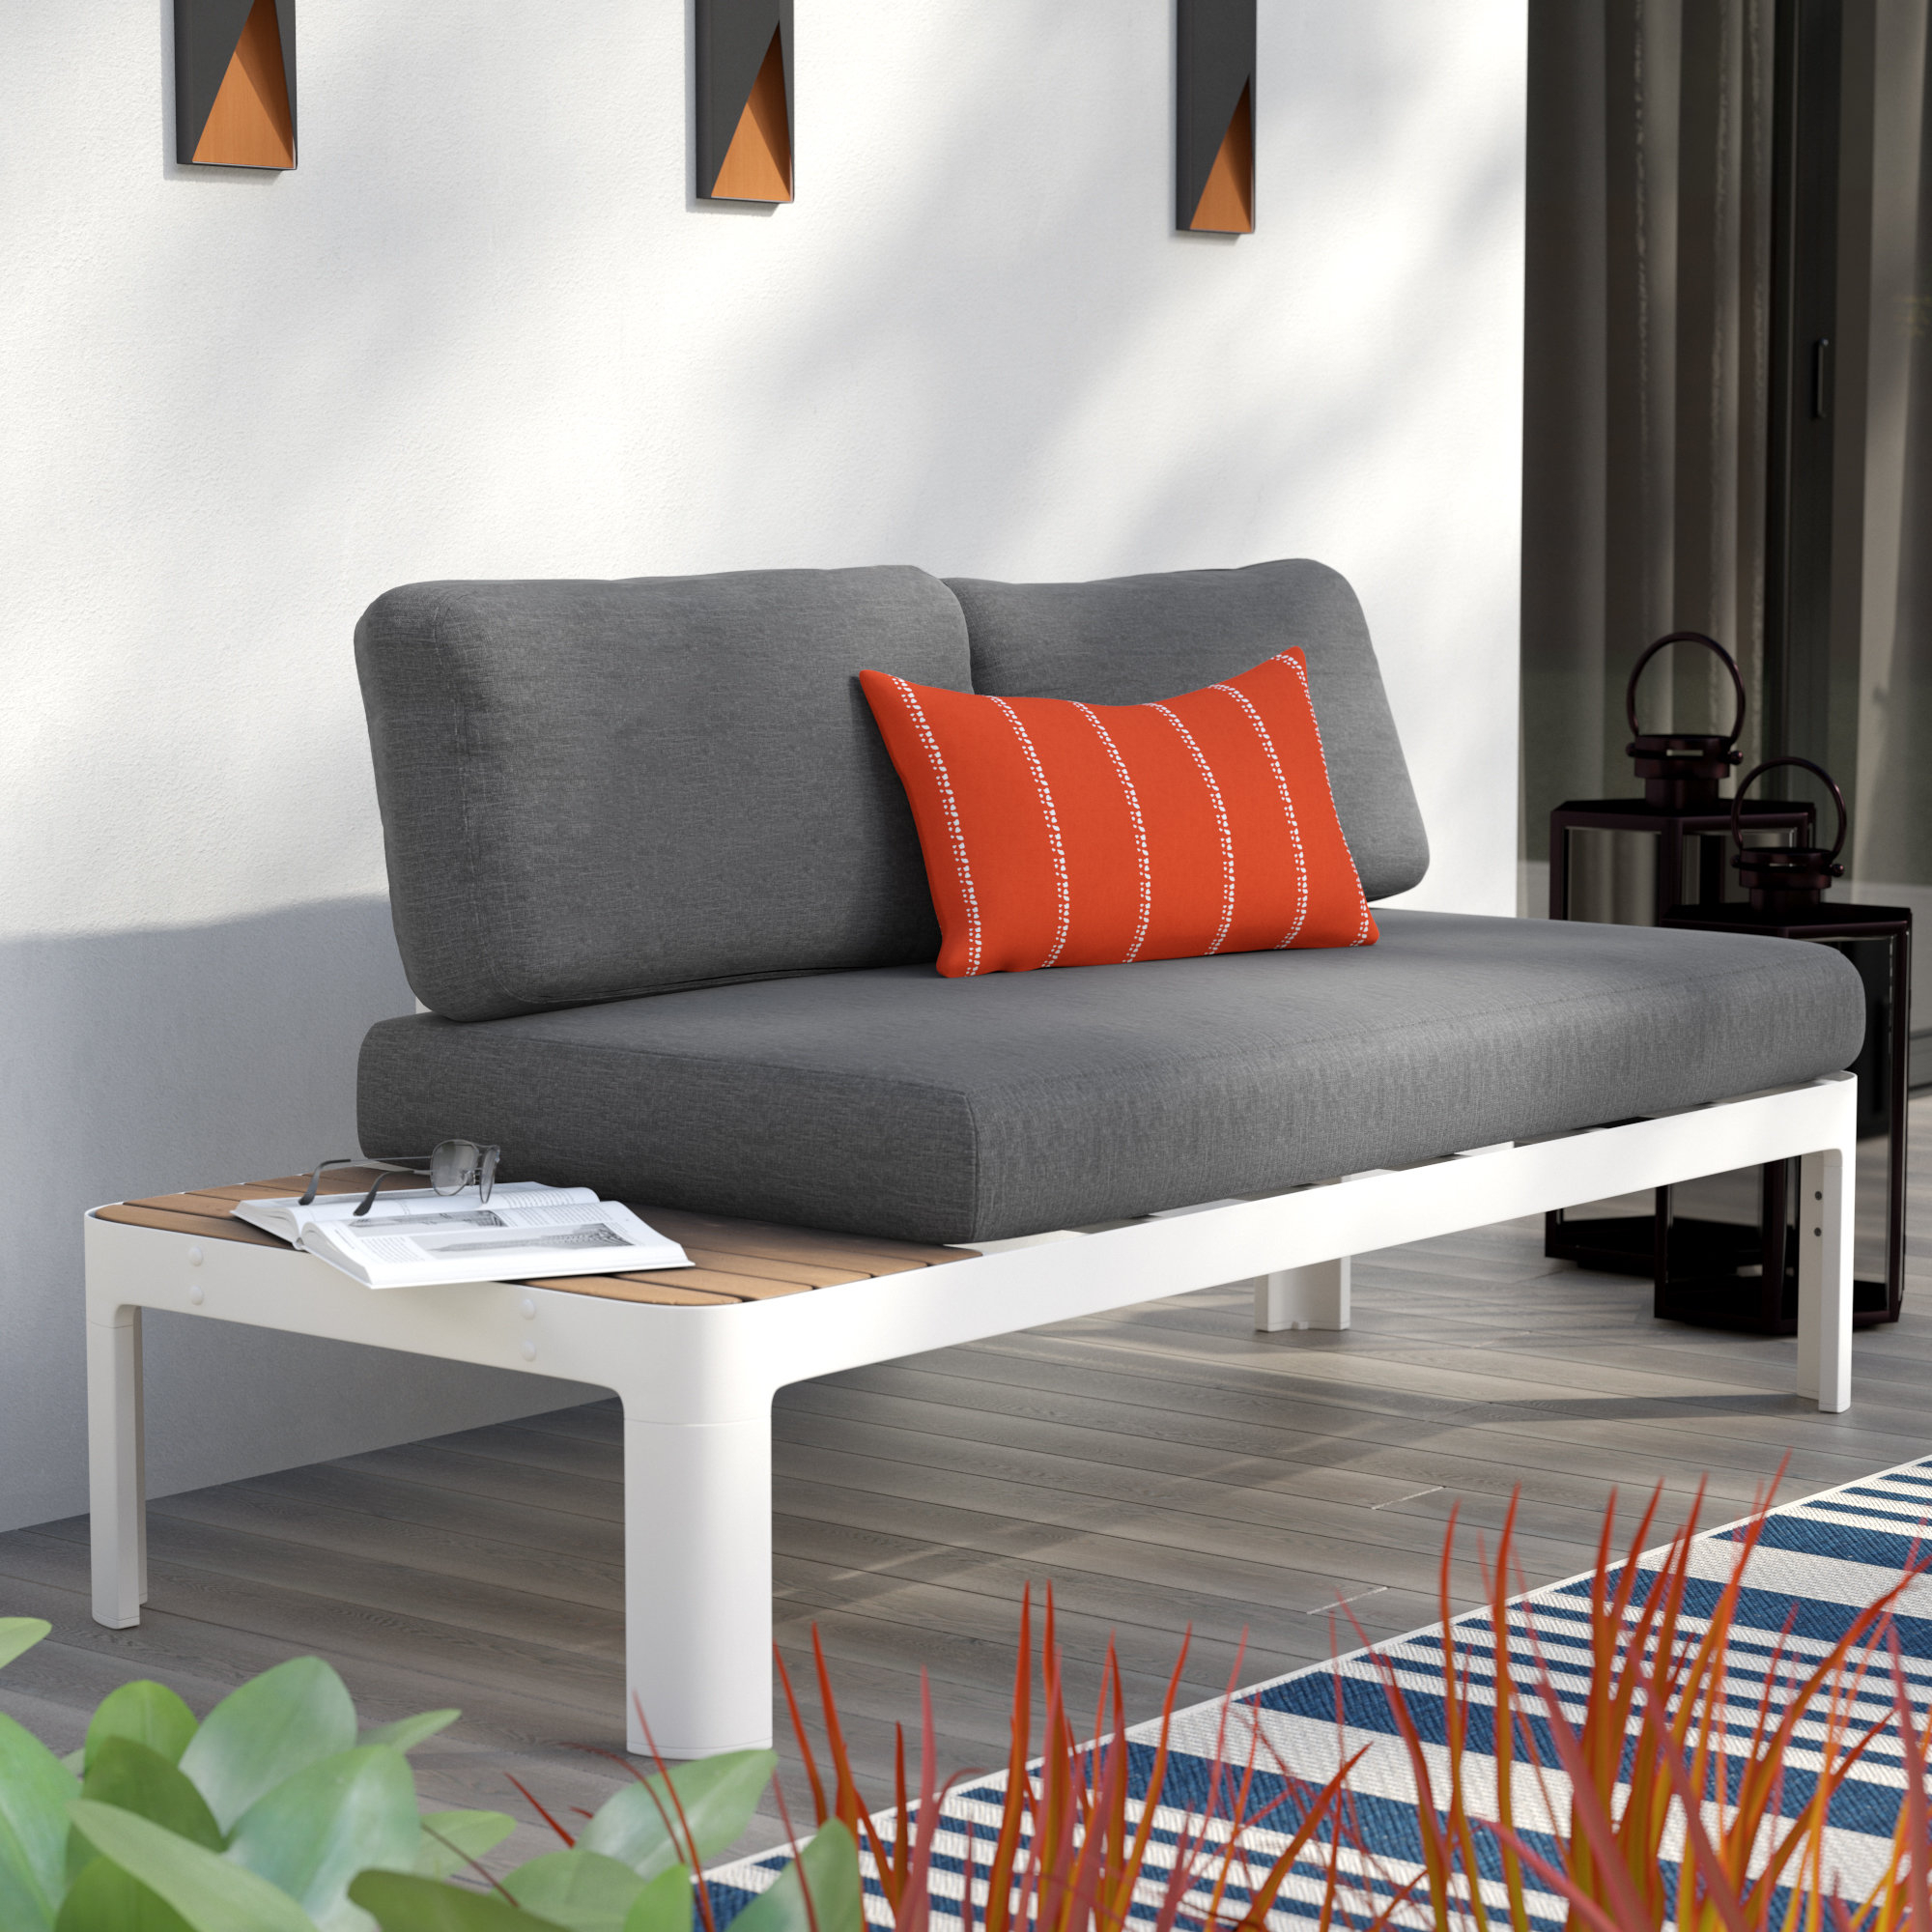 Mansfield Teak Loveseats With Cushion Pertaining To Well Liked Thora Teak Loveseat With Cushions (View 11 of 20)